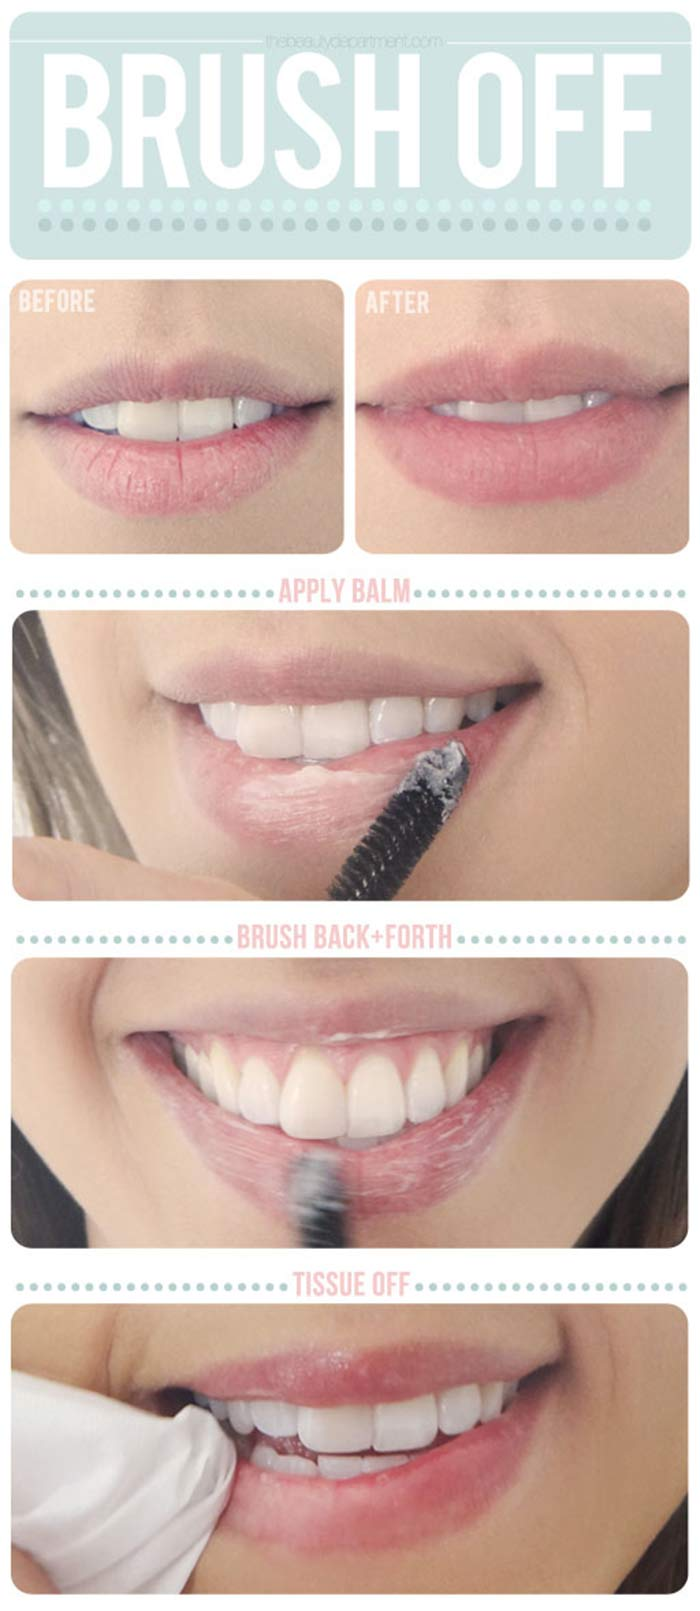 Exfoliate Your Lips: Via: Source Pinit